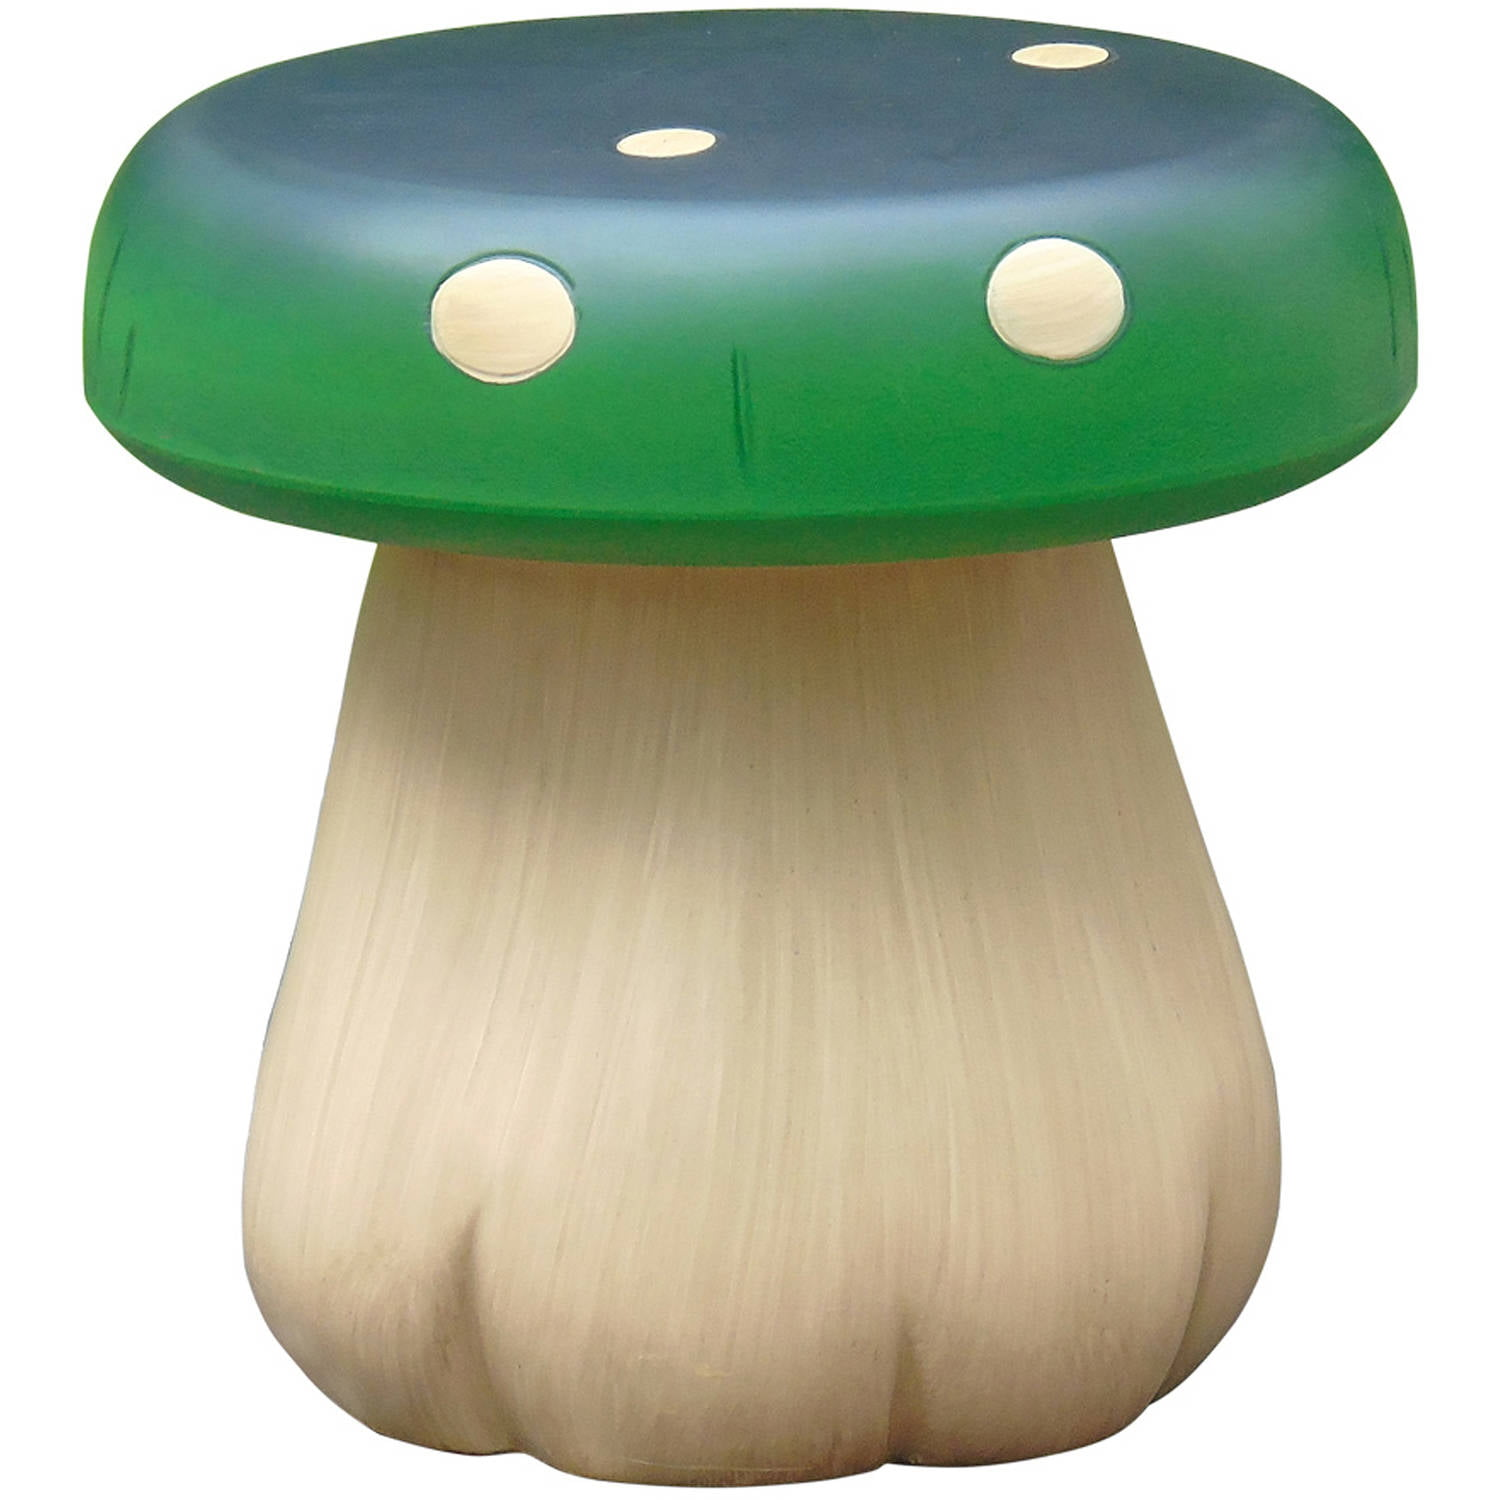 mushroom stool video game theme custom furniture. mushroom stool video game theme custom furniture 0